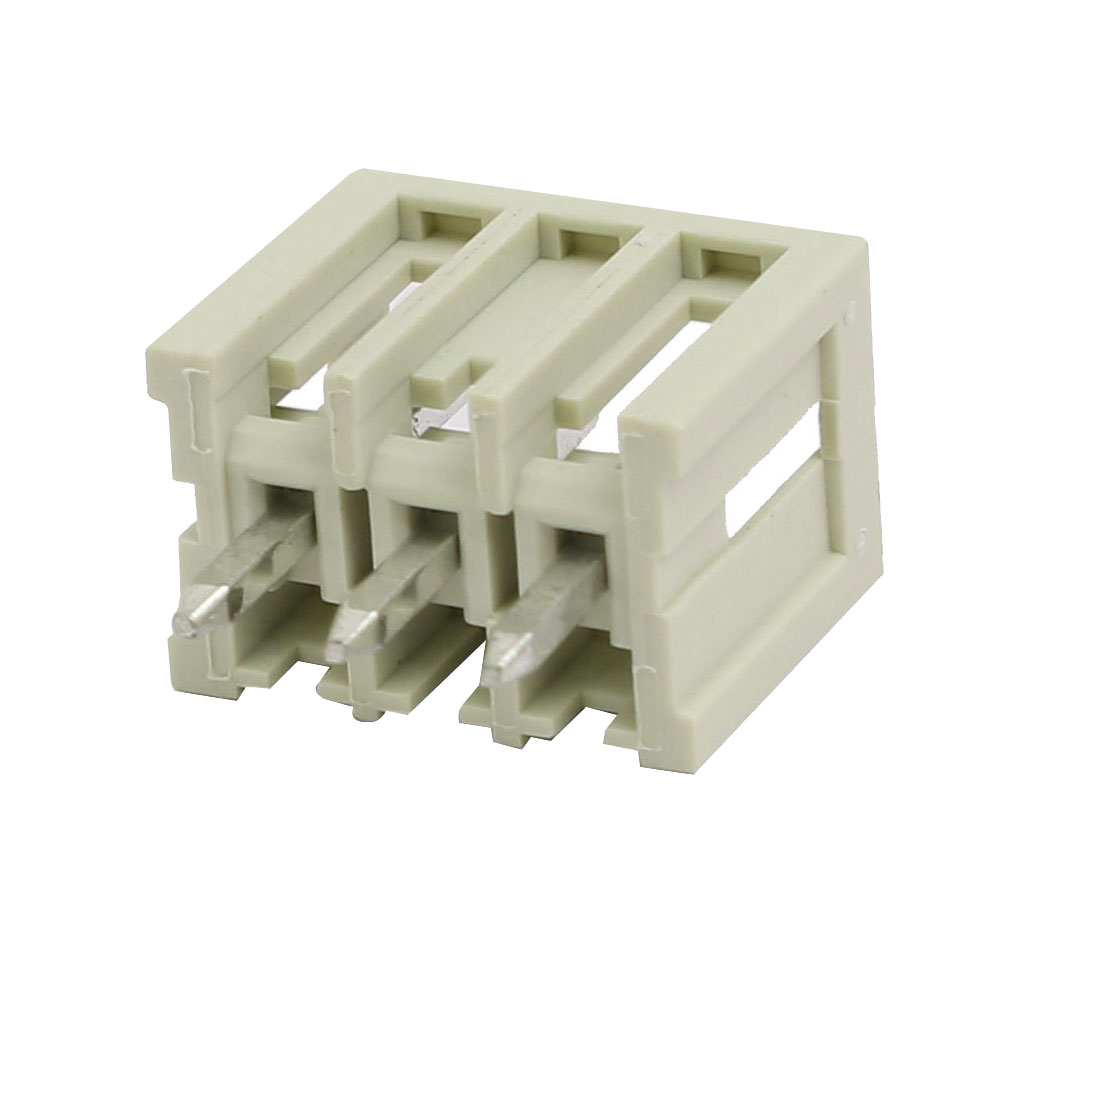 3 Pole PCB 3.5mm Pitch Straight Pin Box Header MCS Connector